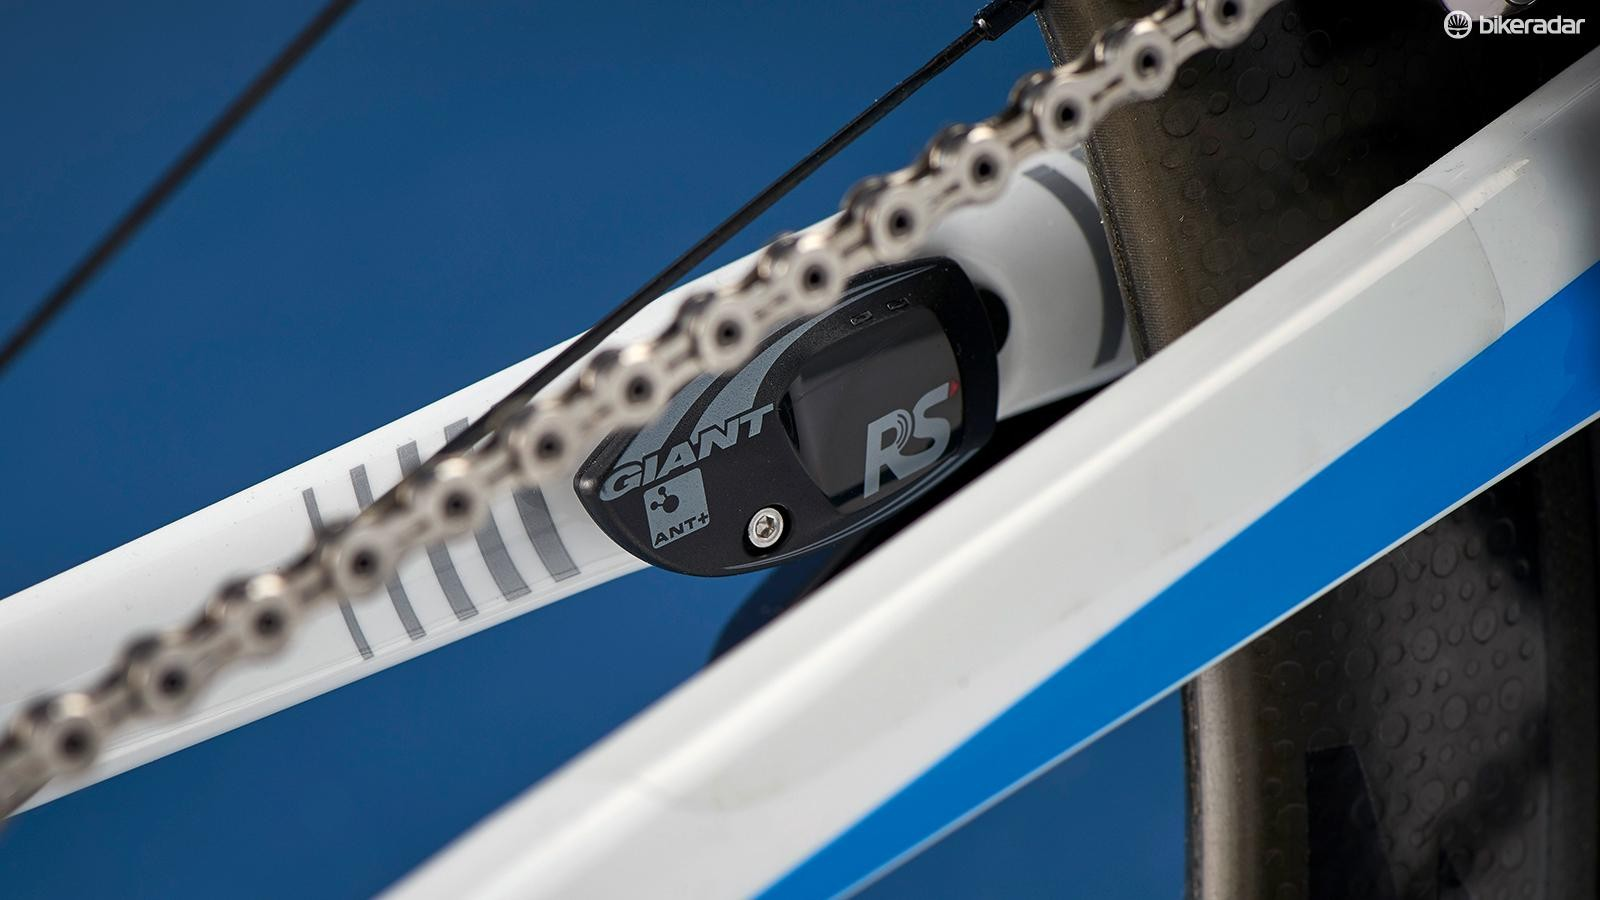 Giant's RS RideSensor magnet will transmit speed and cadence data to any ANT+device